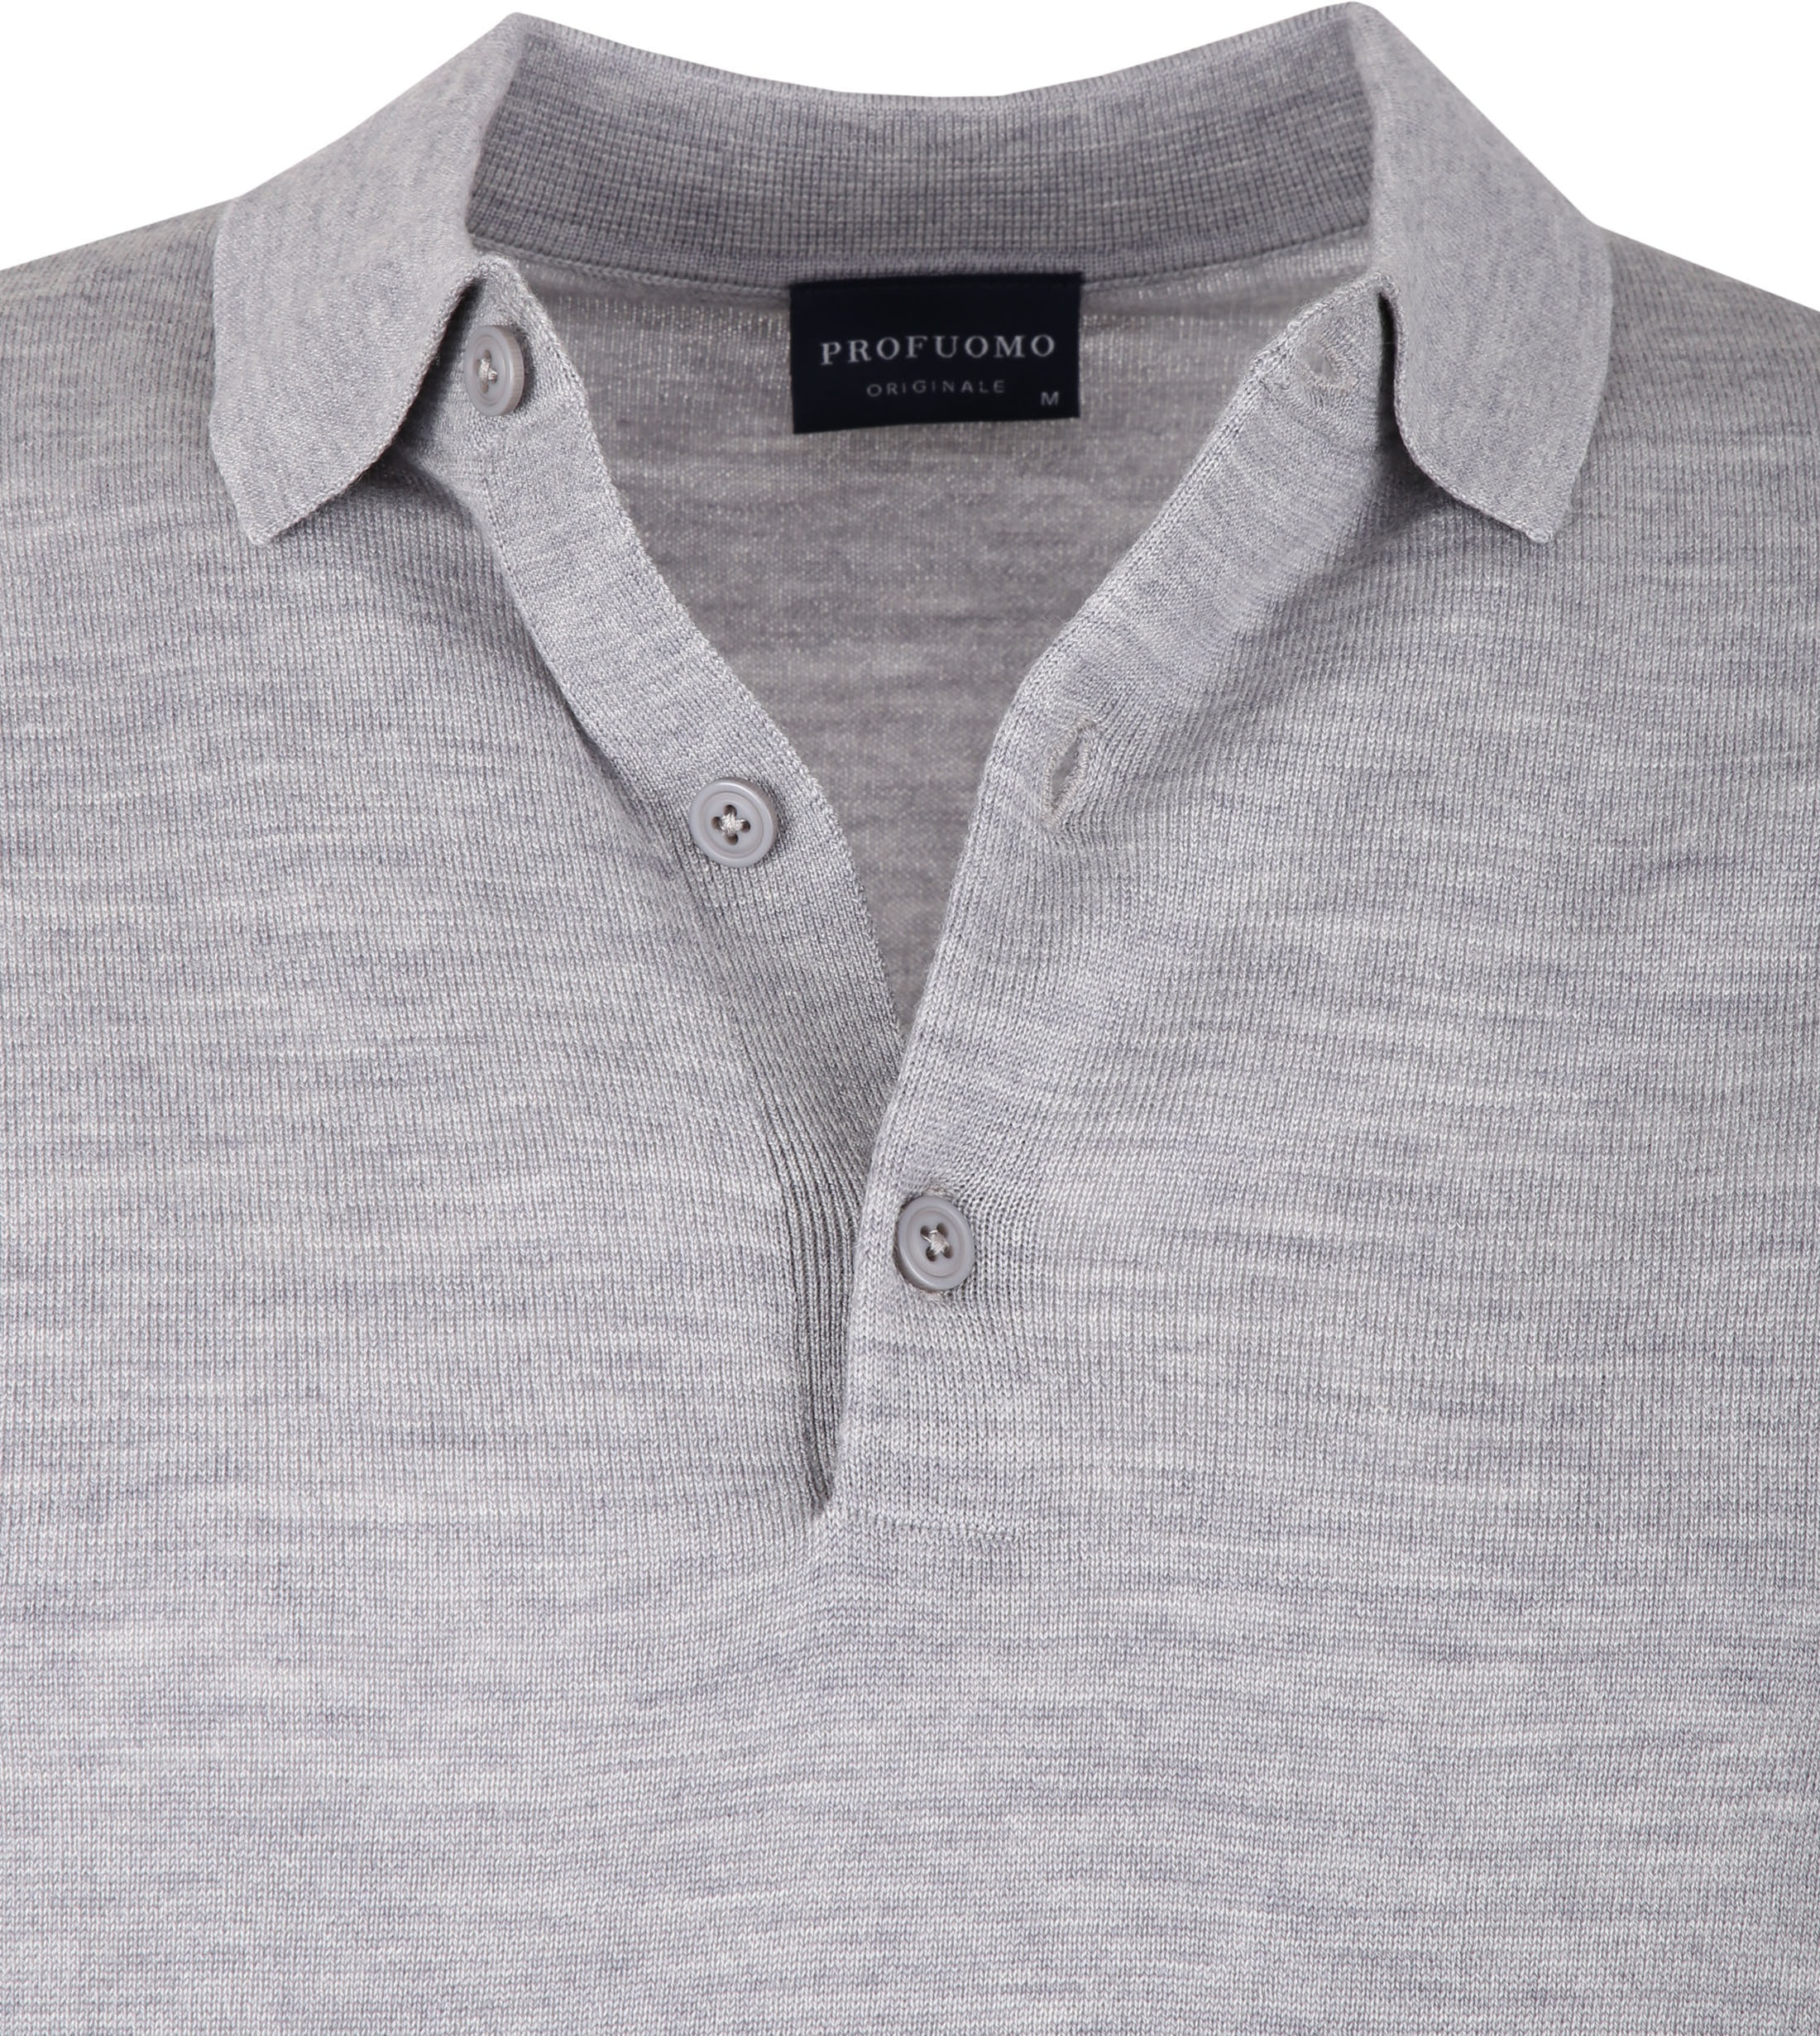 Profuomo Merino Poloshirt Grey photo 1